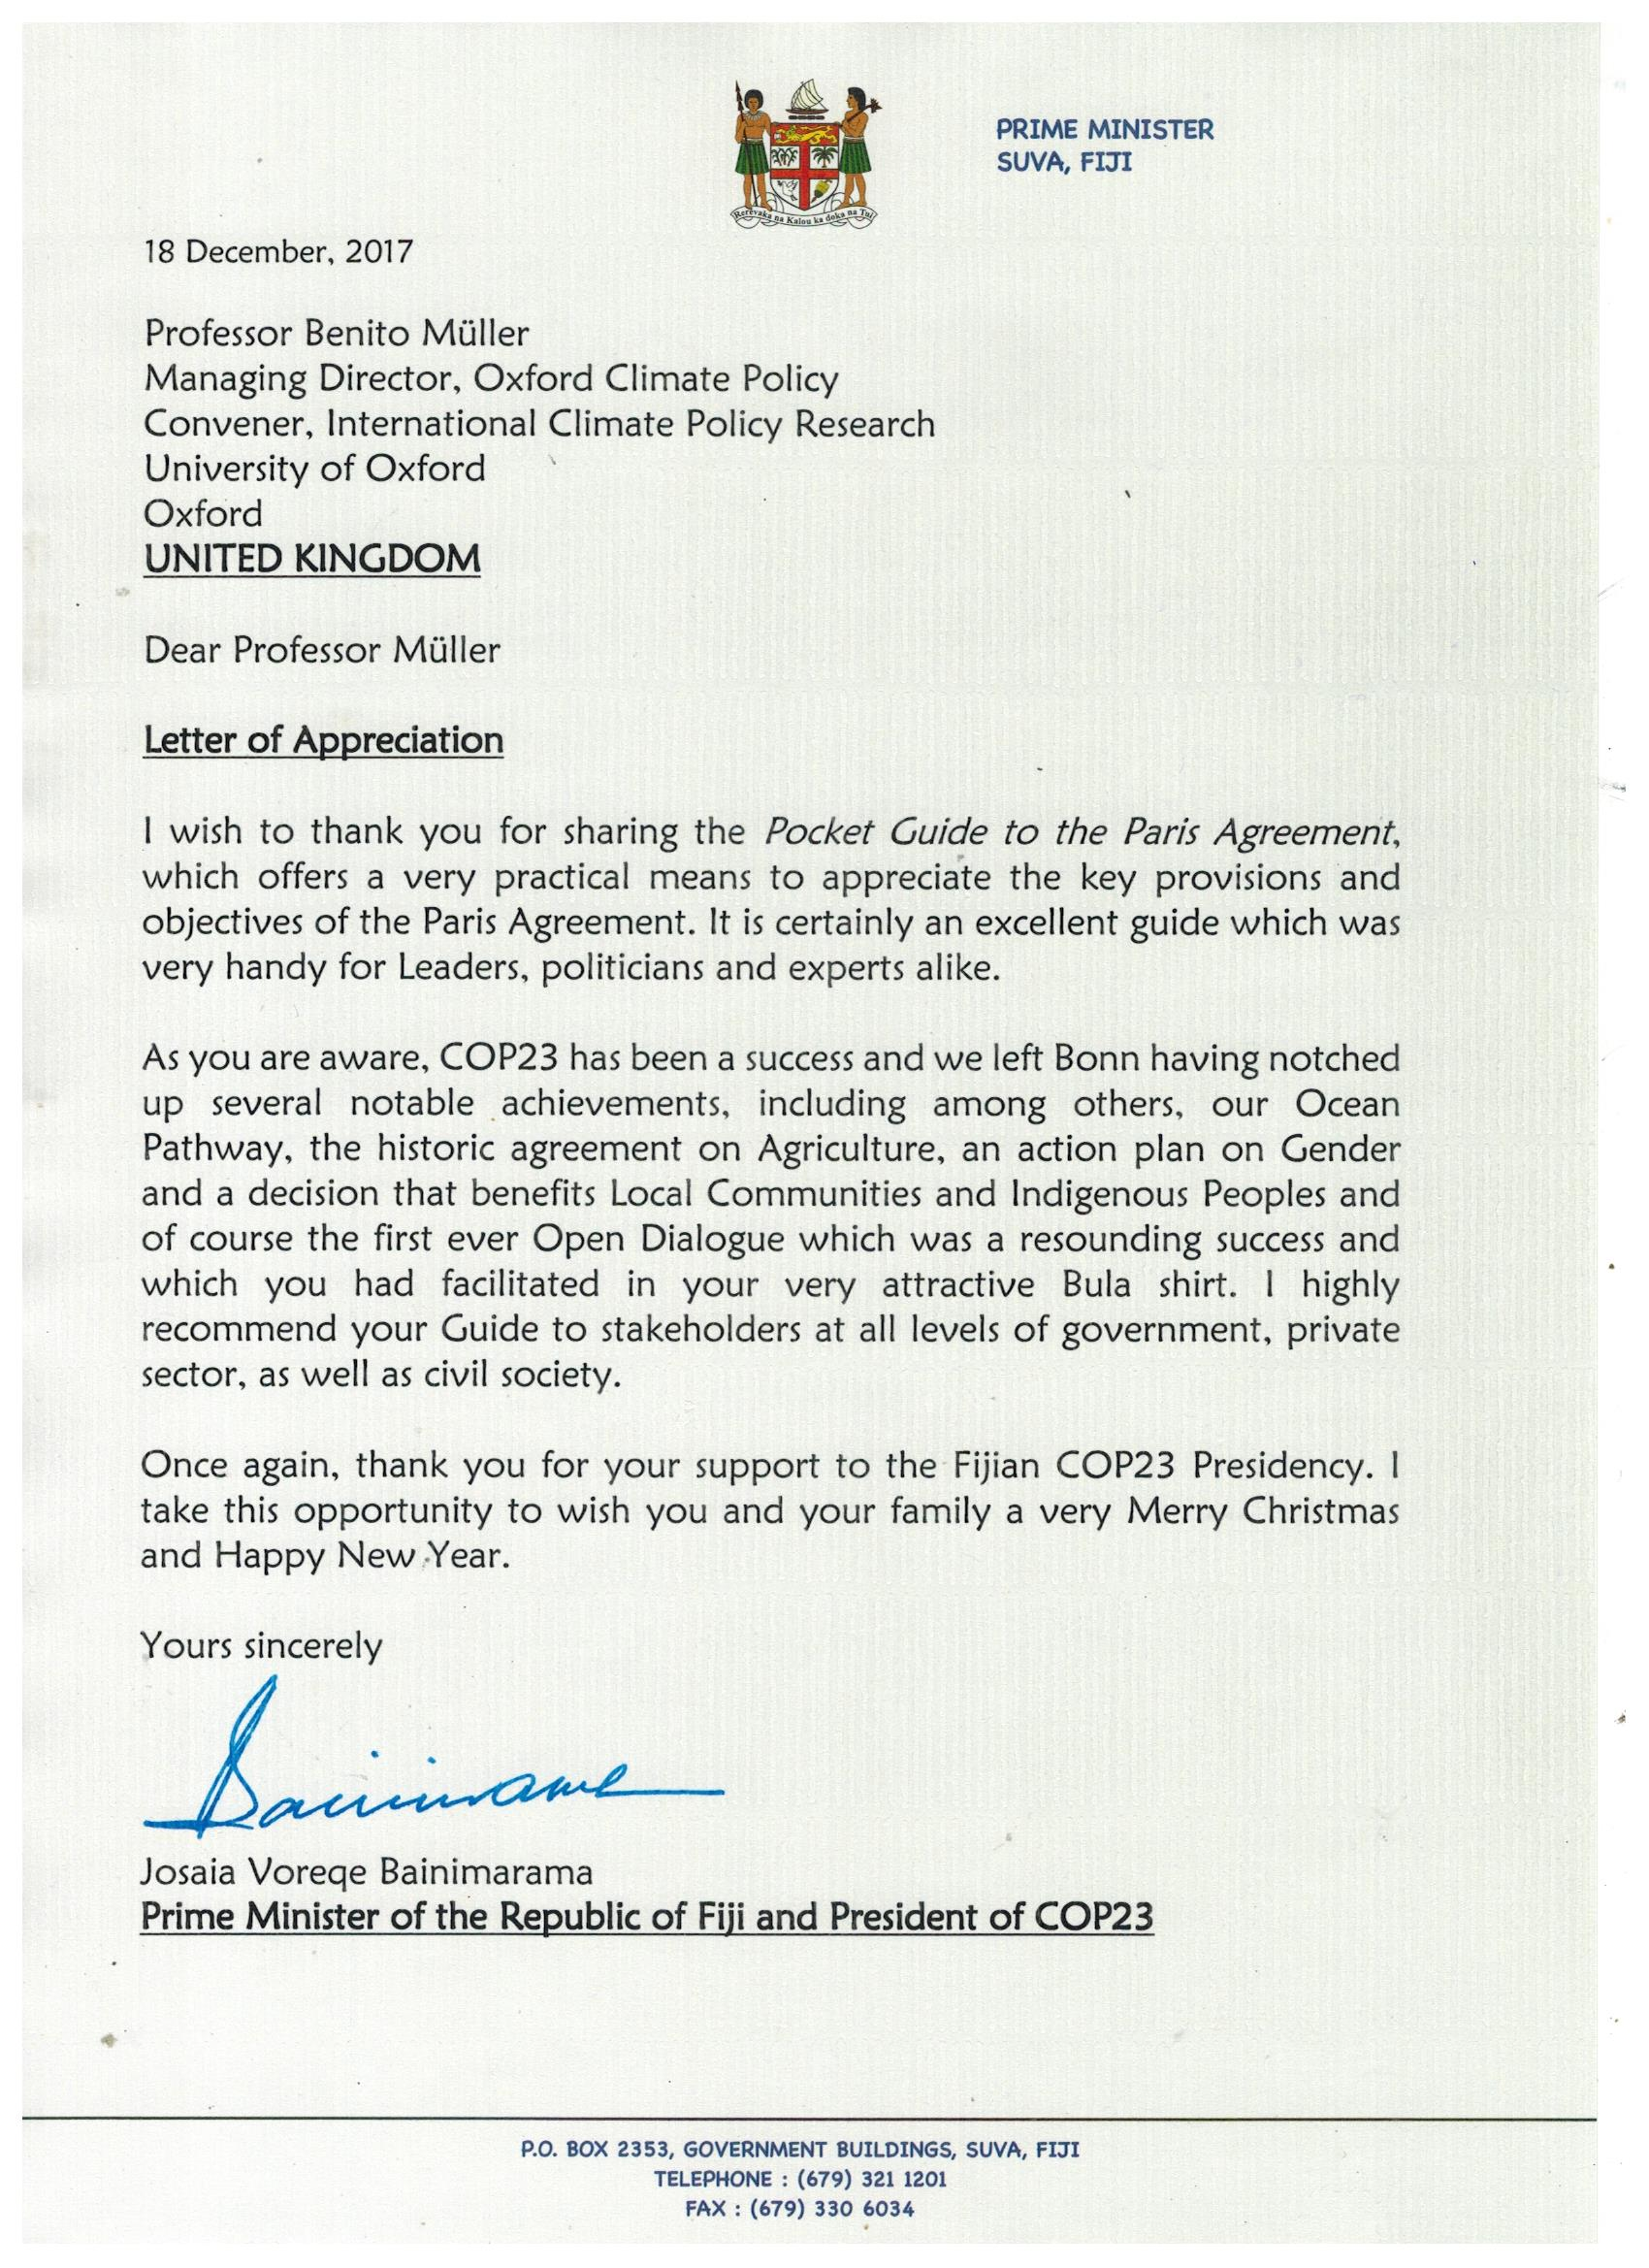 Letter Of Appreciation From The Prime Minister Of Fiji And President